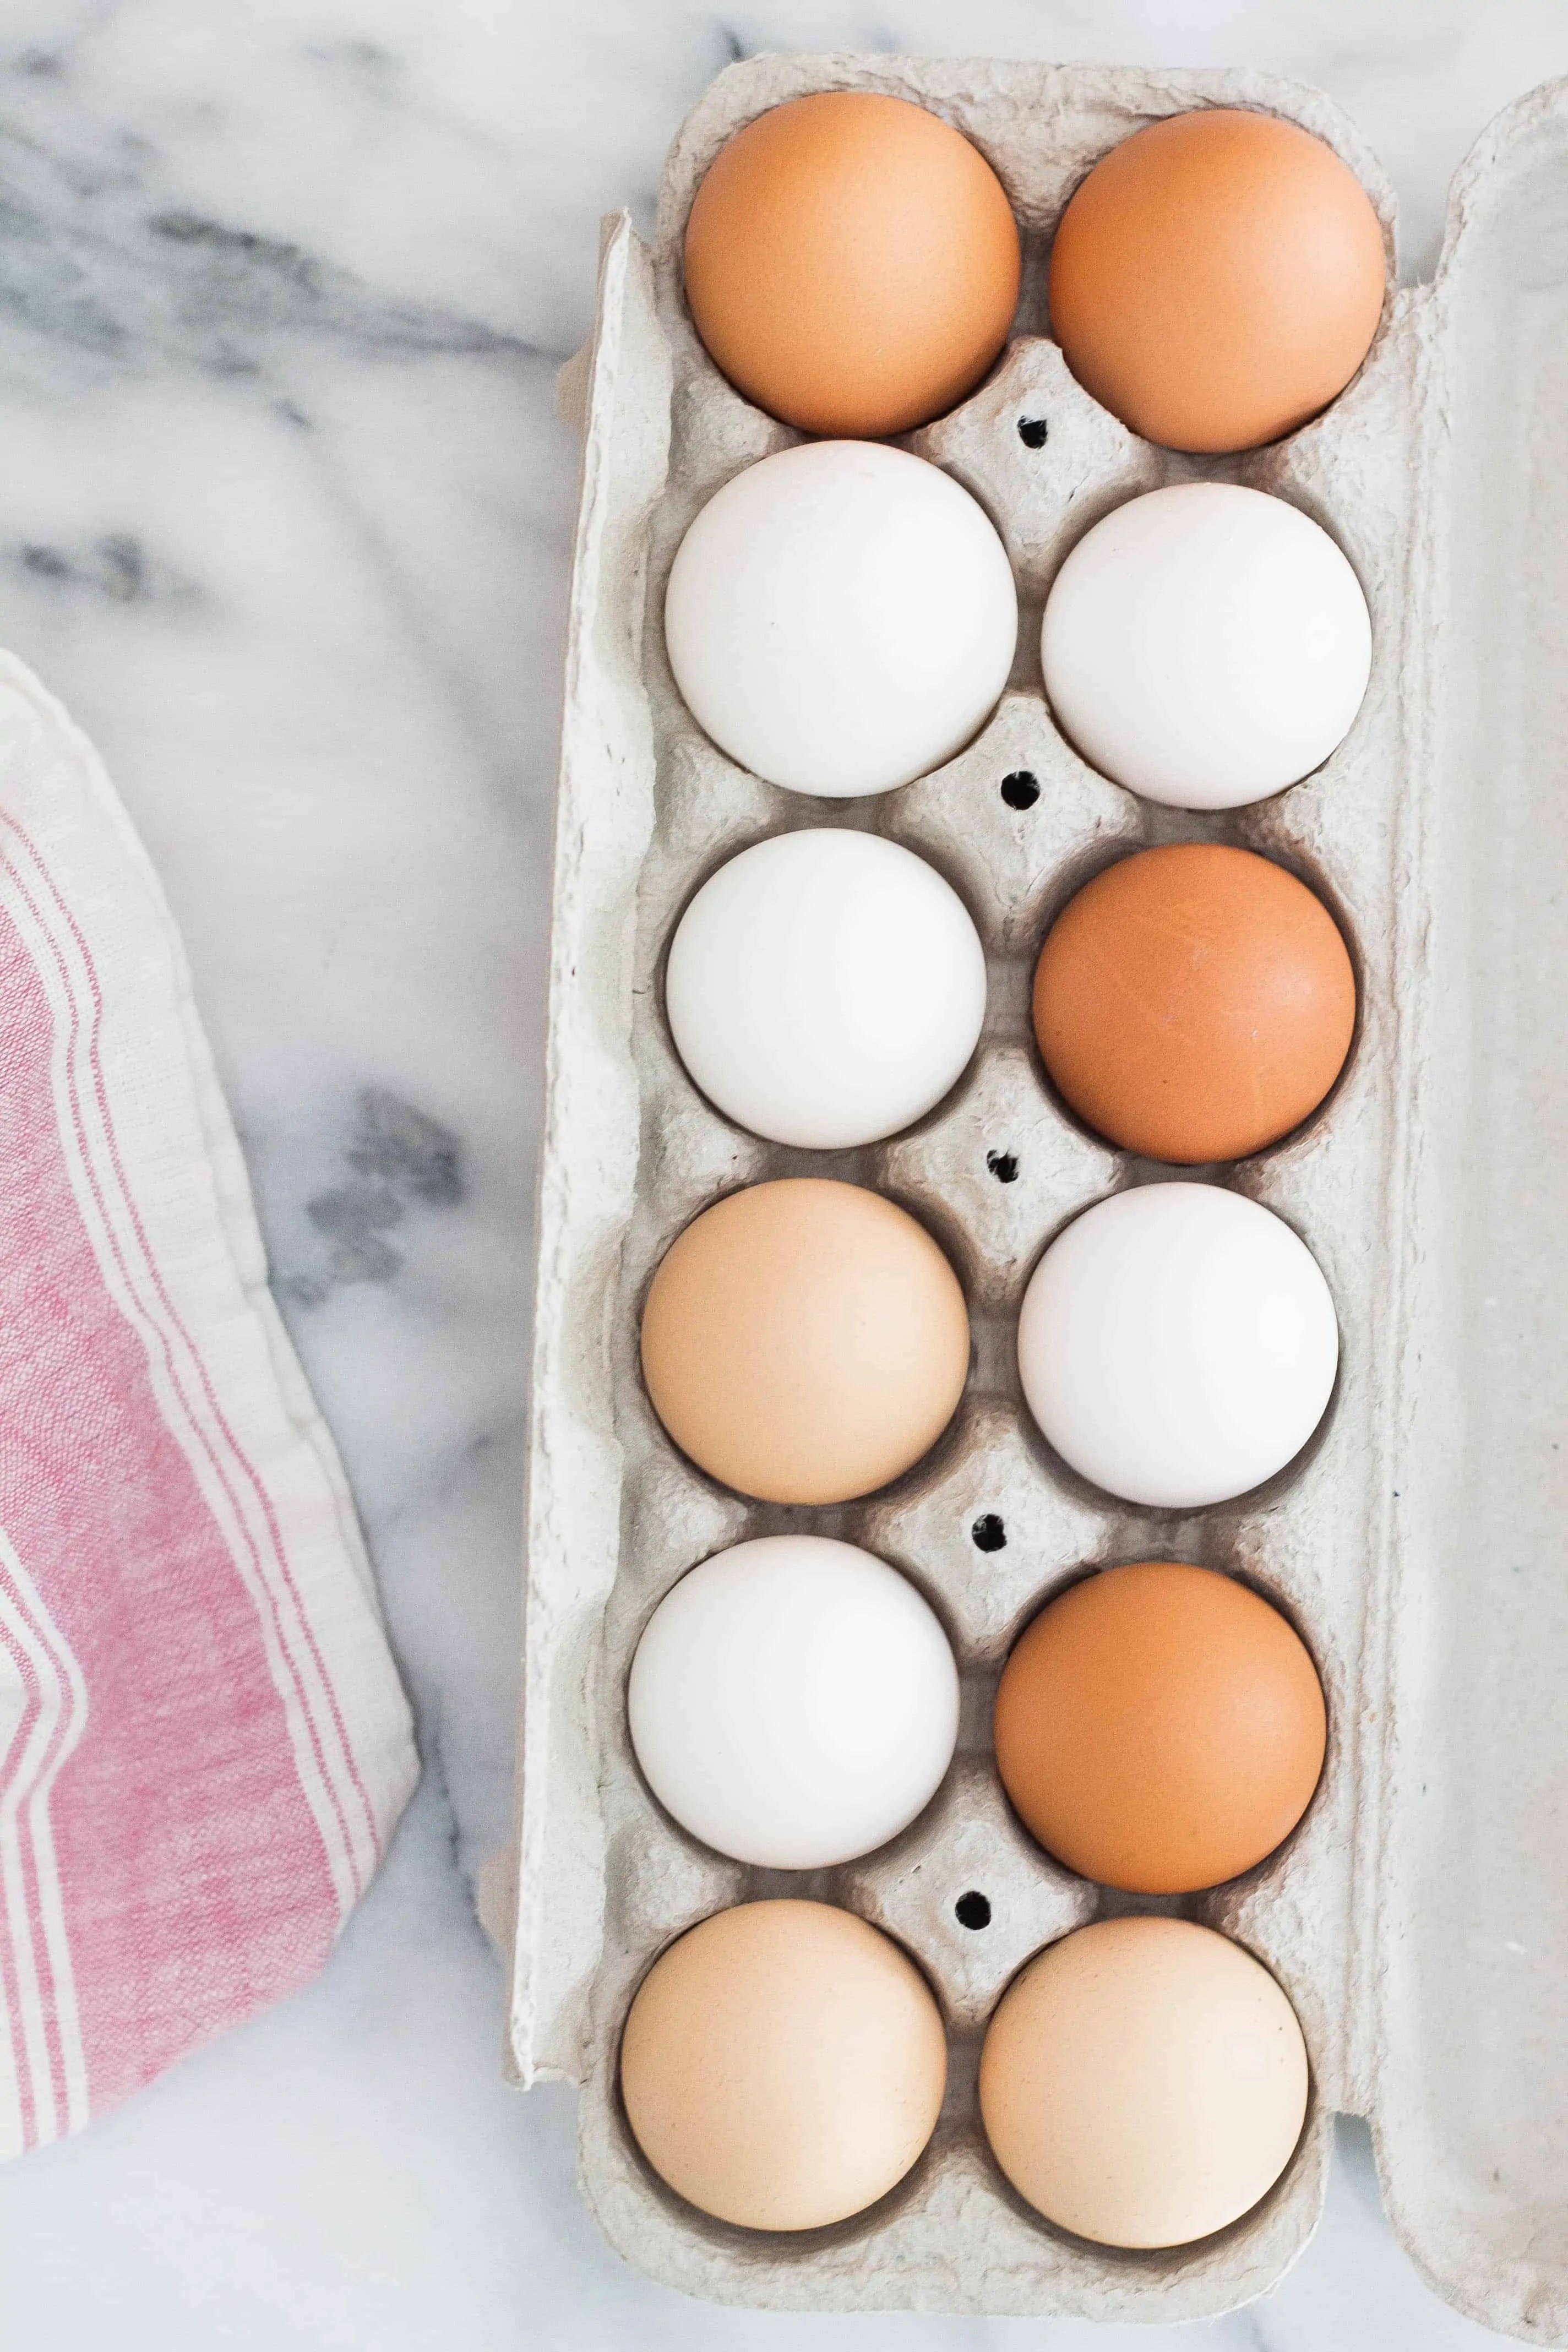 How To Cook Hard-Boiled Eggs in the Oven